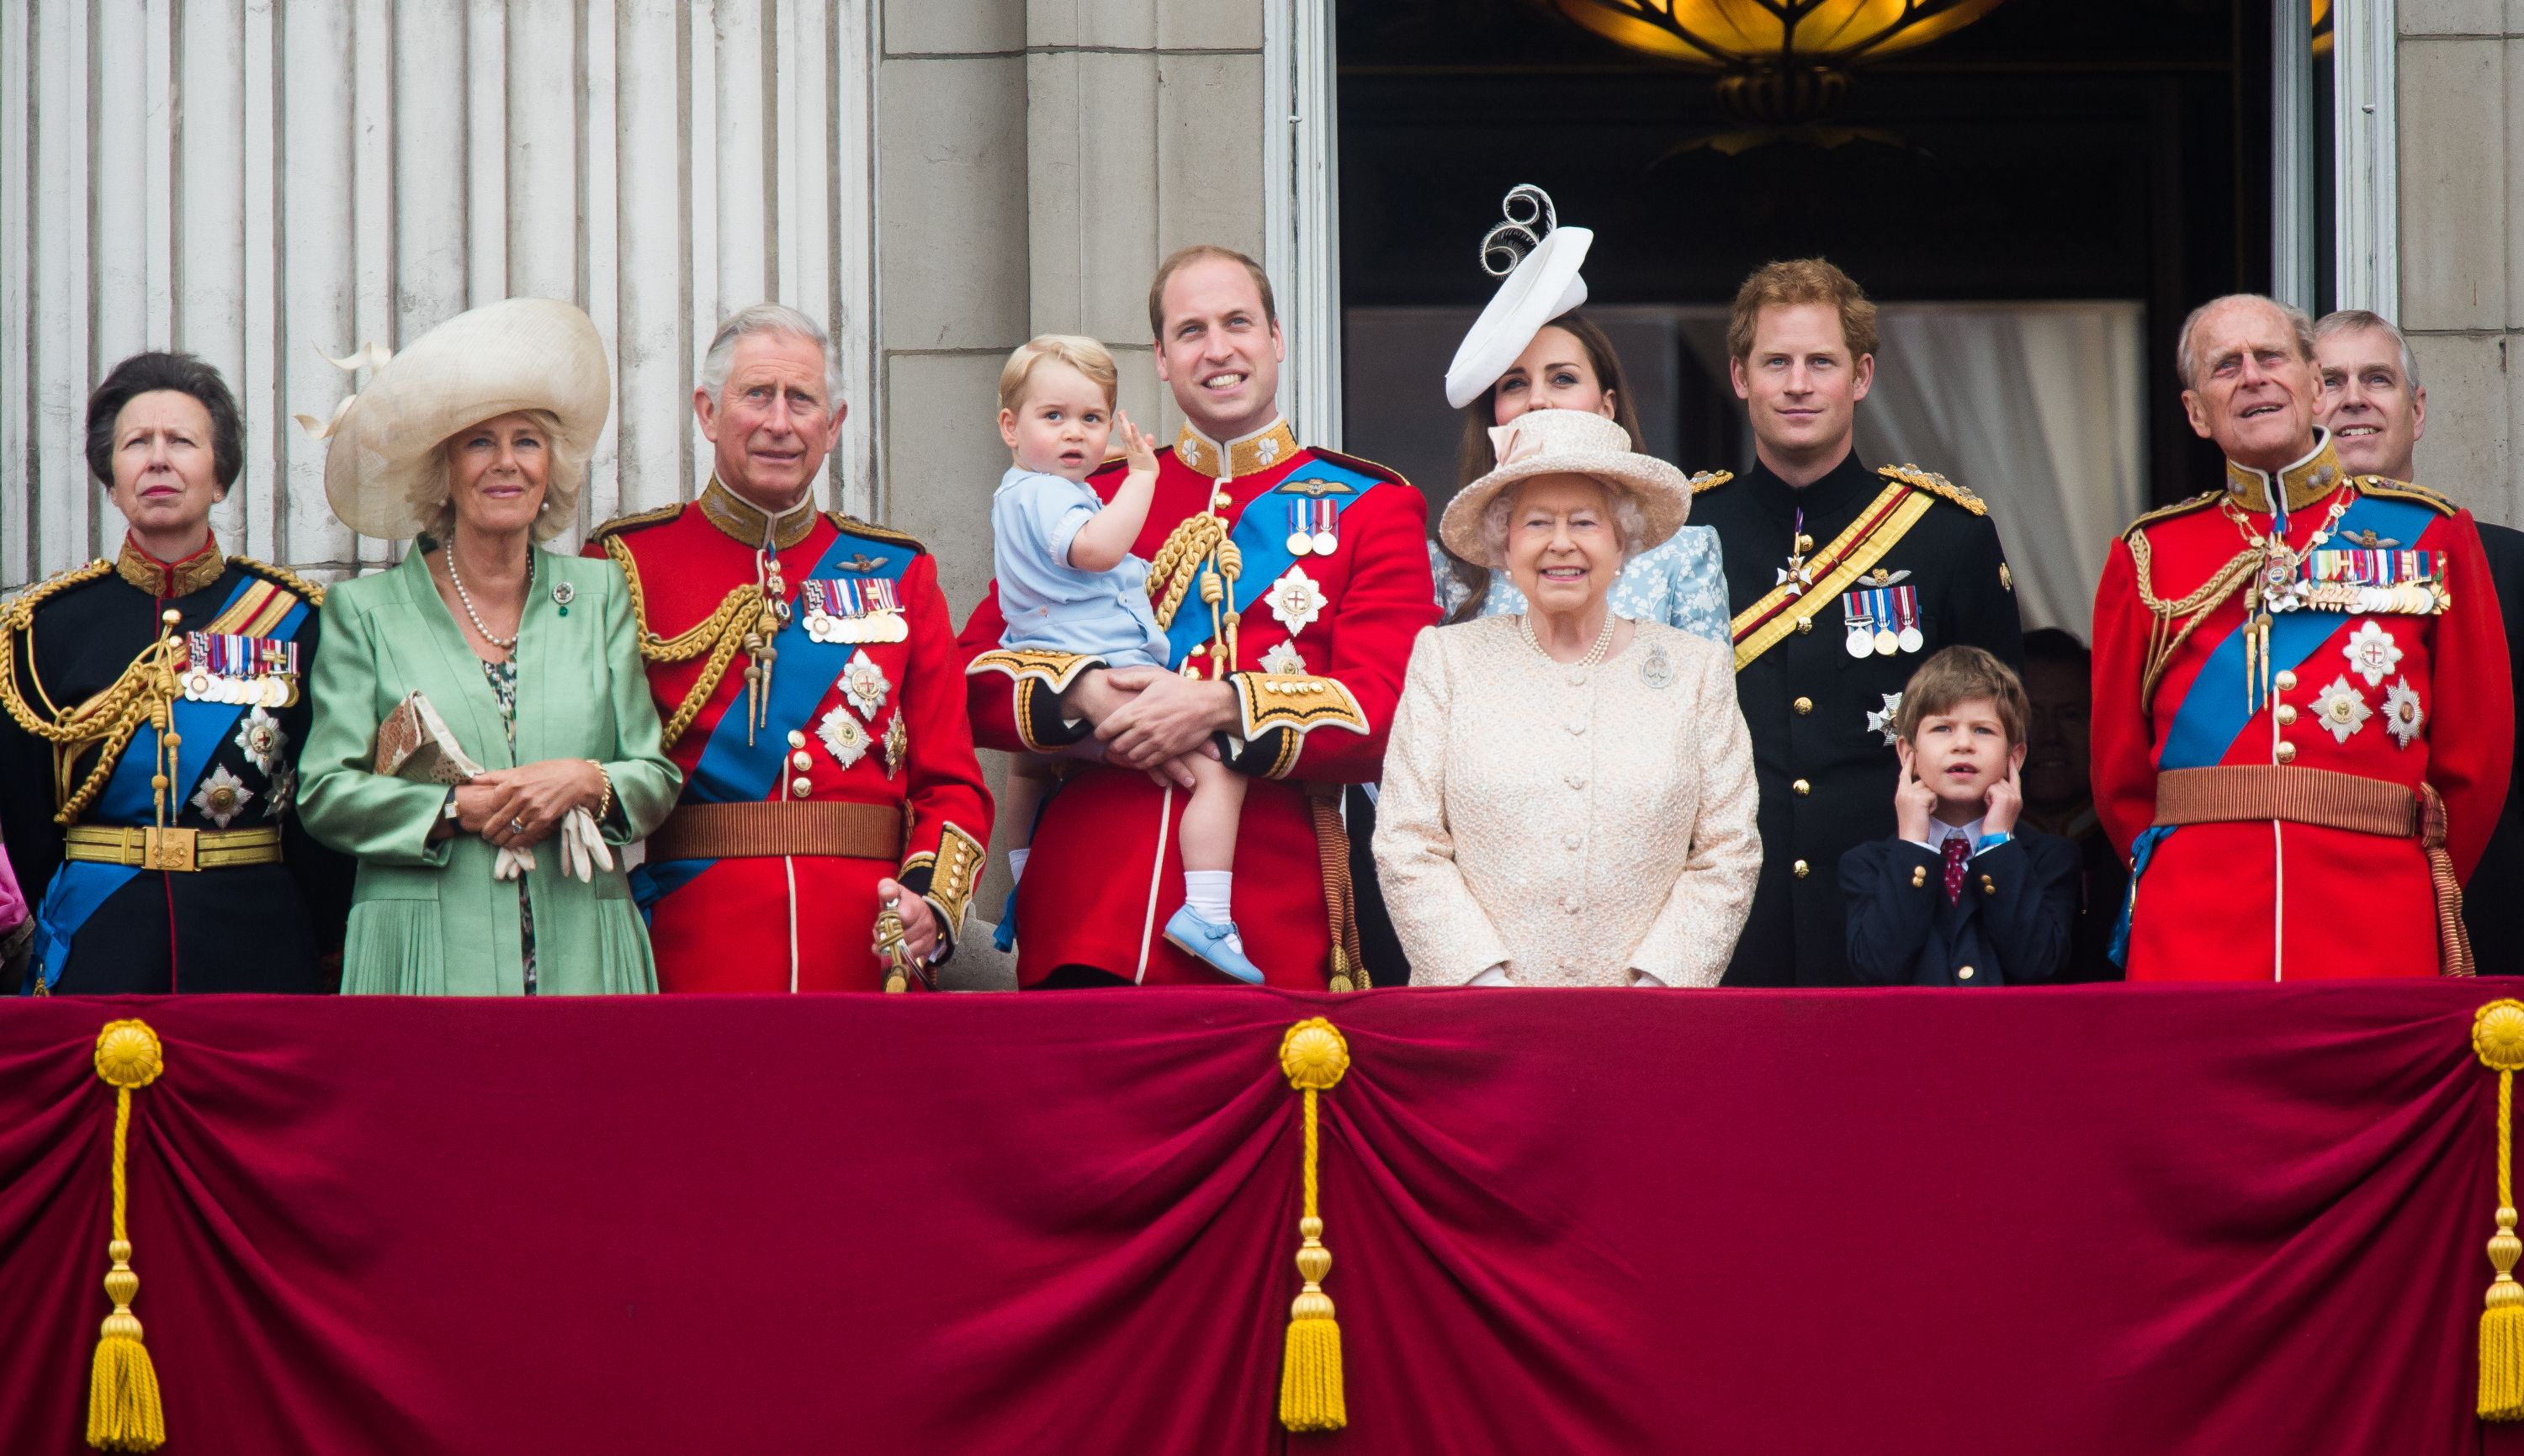 Queen of Great Britain. The Royal Family 81